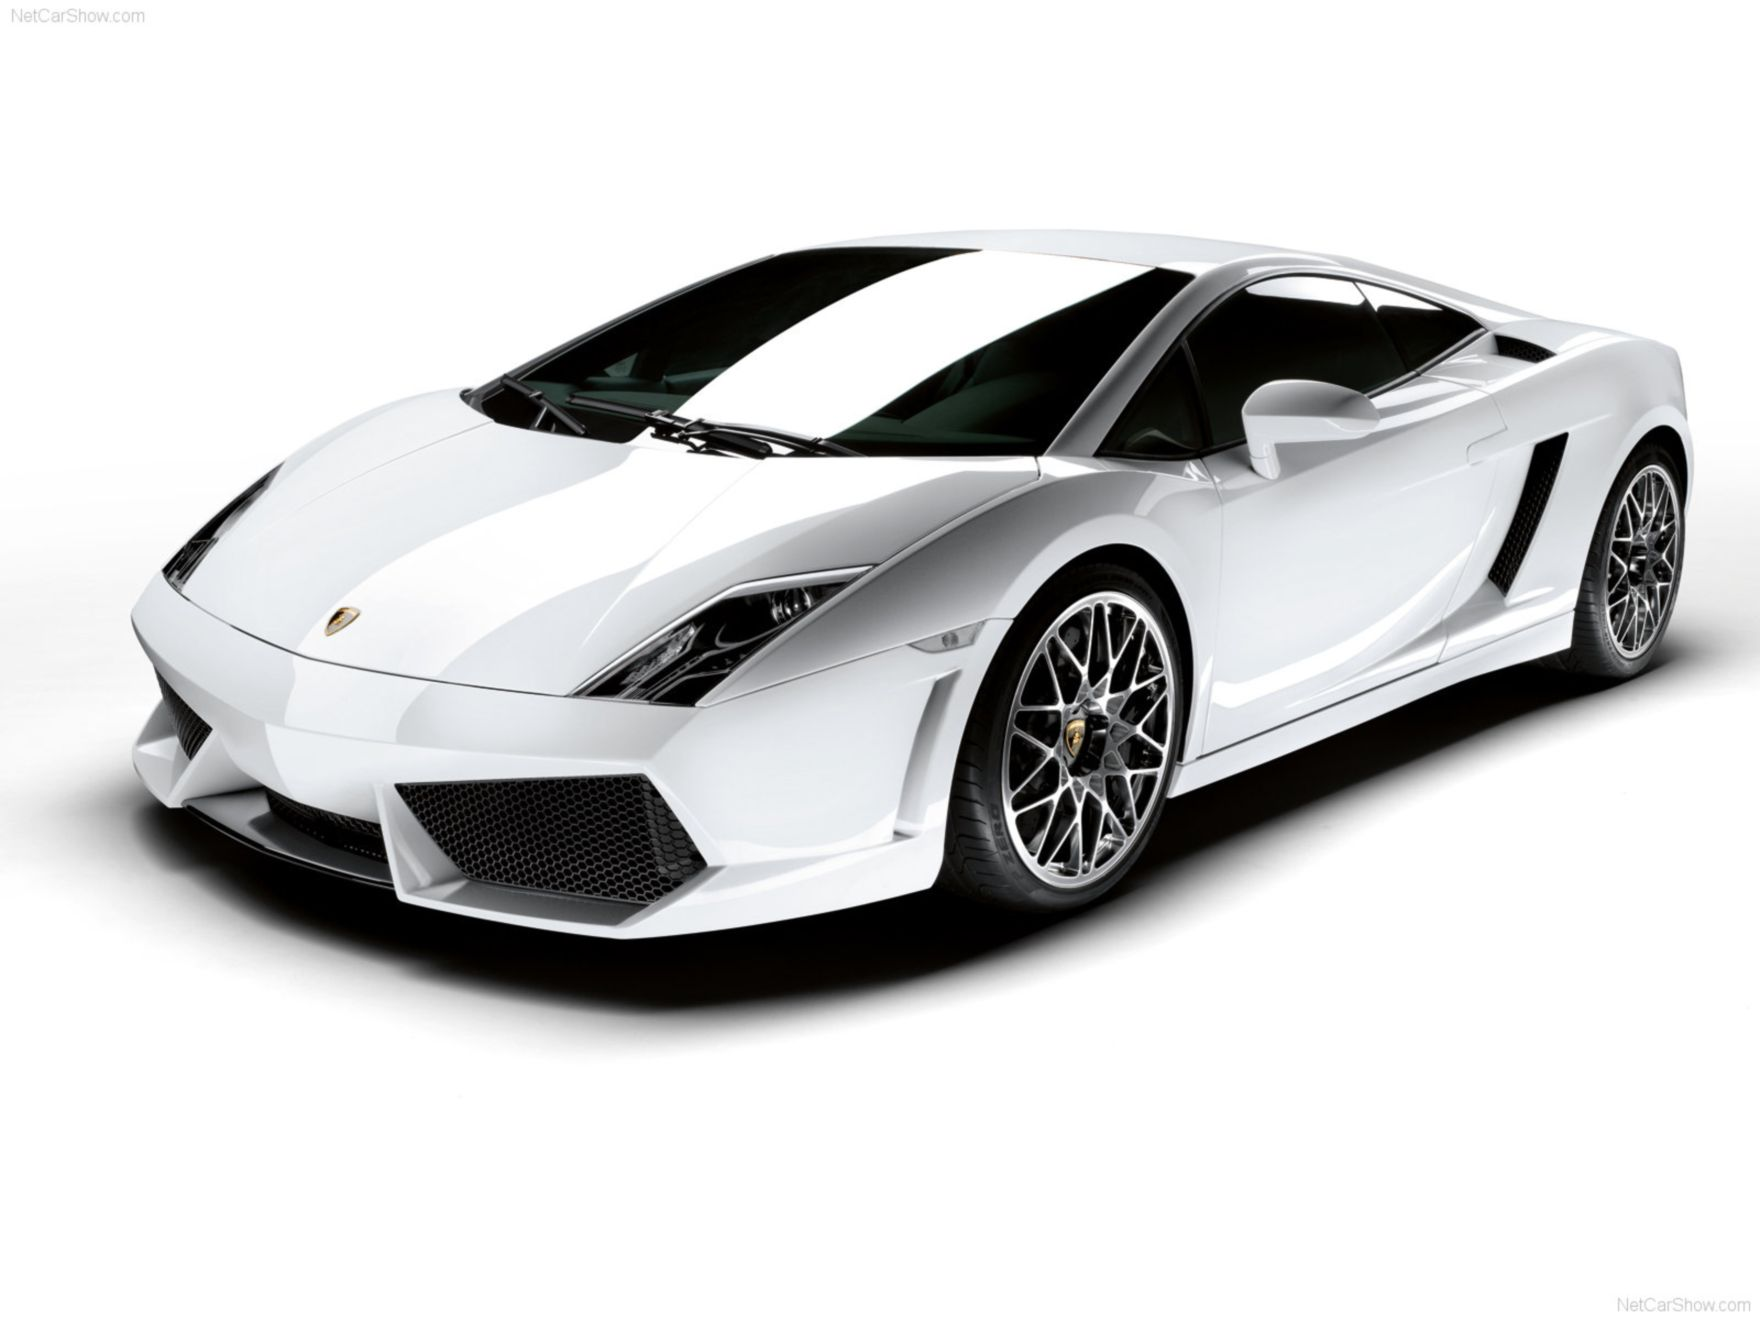 Download free HD Lamborghini Gallardo HD Normal Wallpaper, image